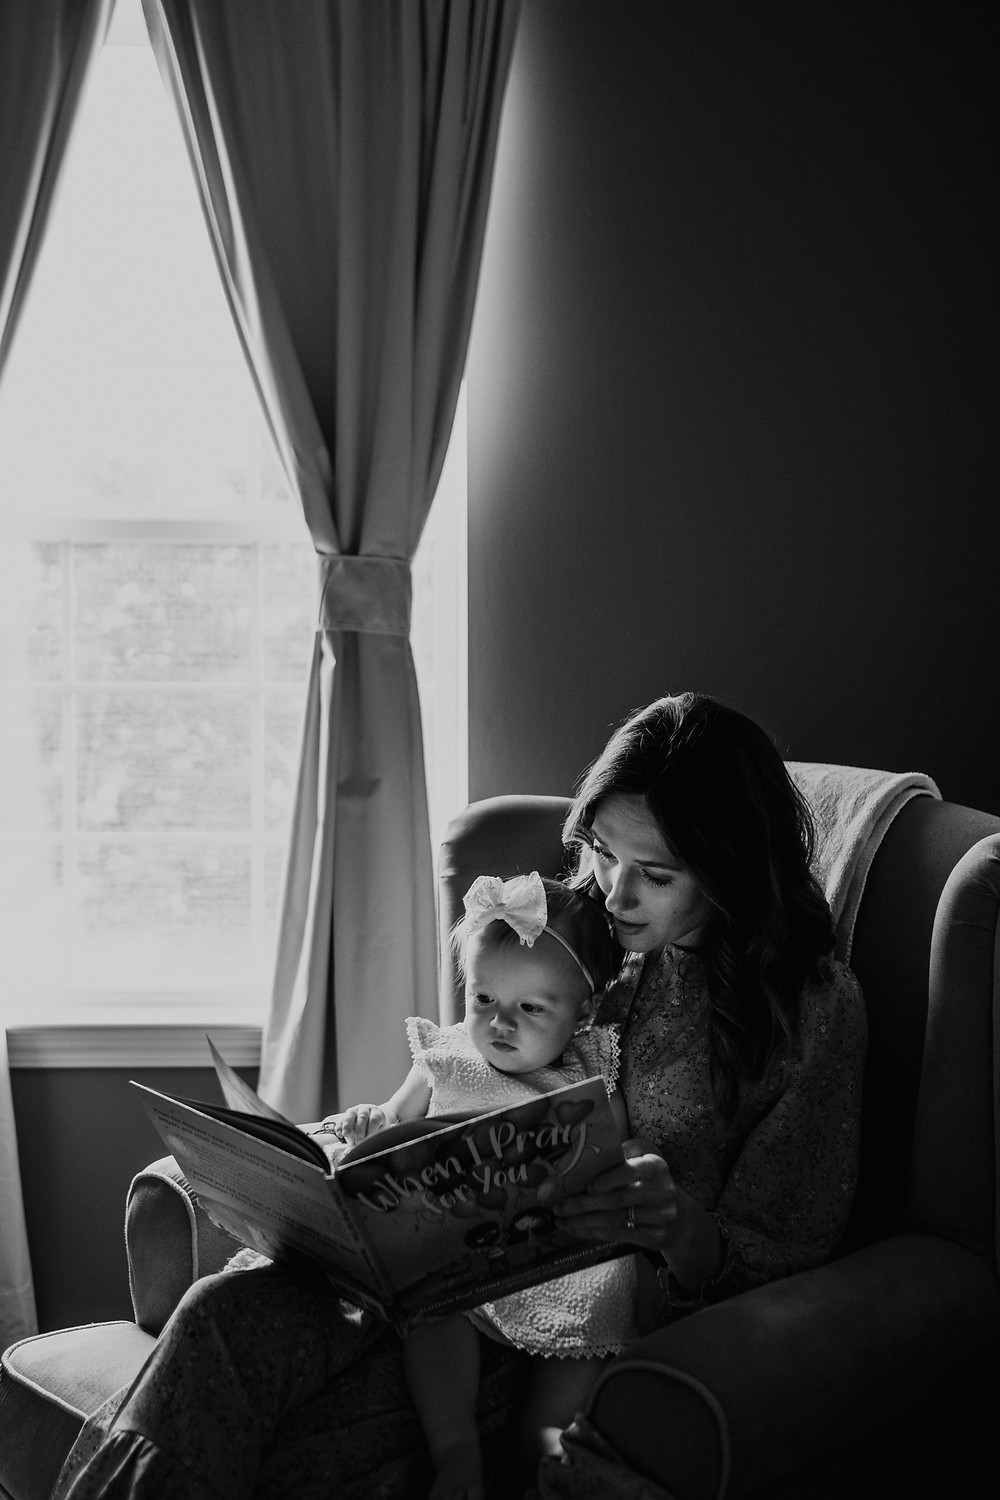 Mother reading book to child by window. Photographed by Nicole Leanne Photography.